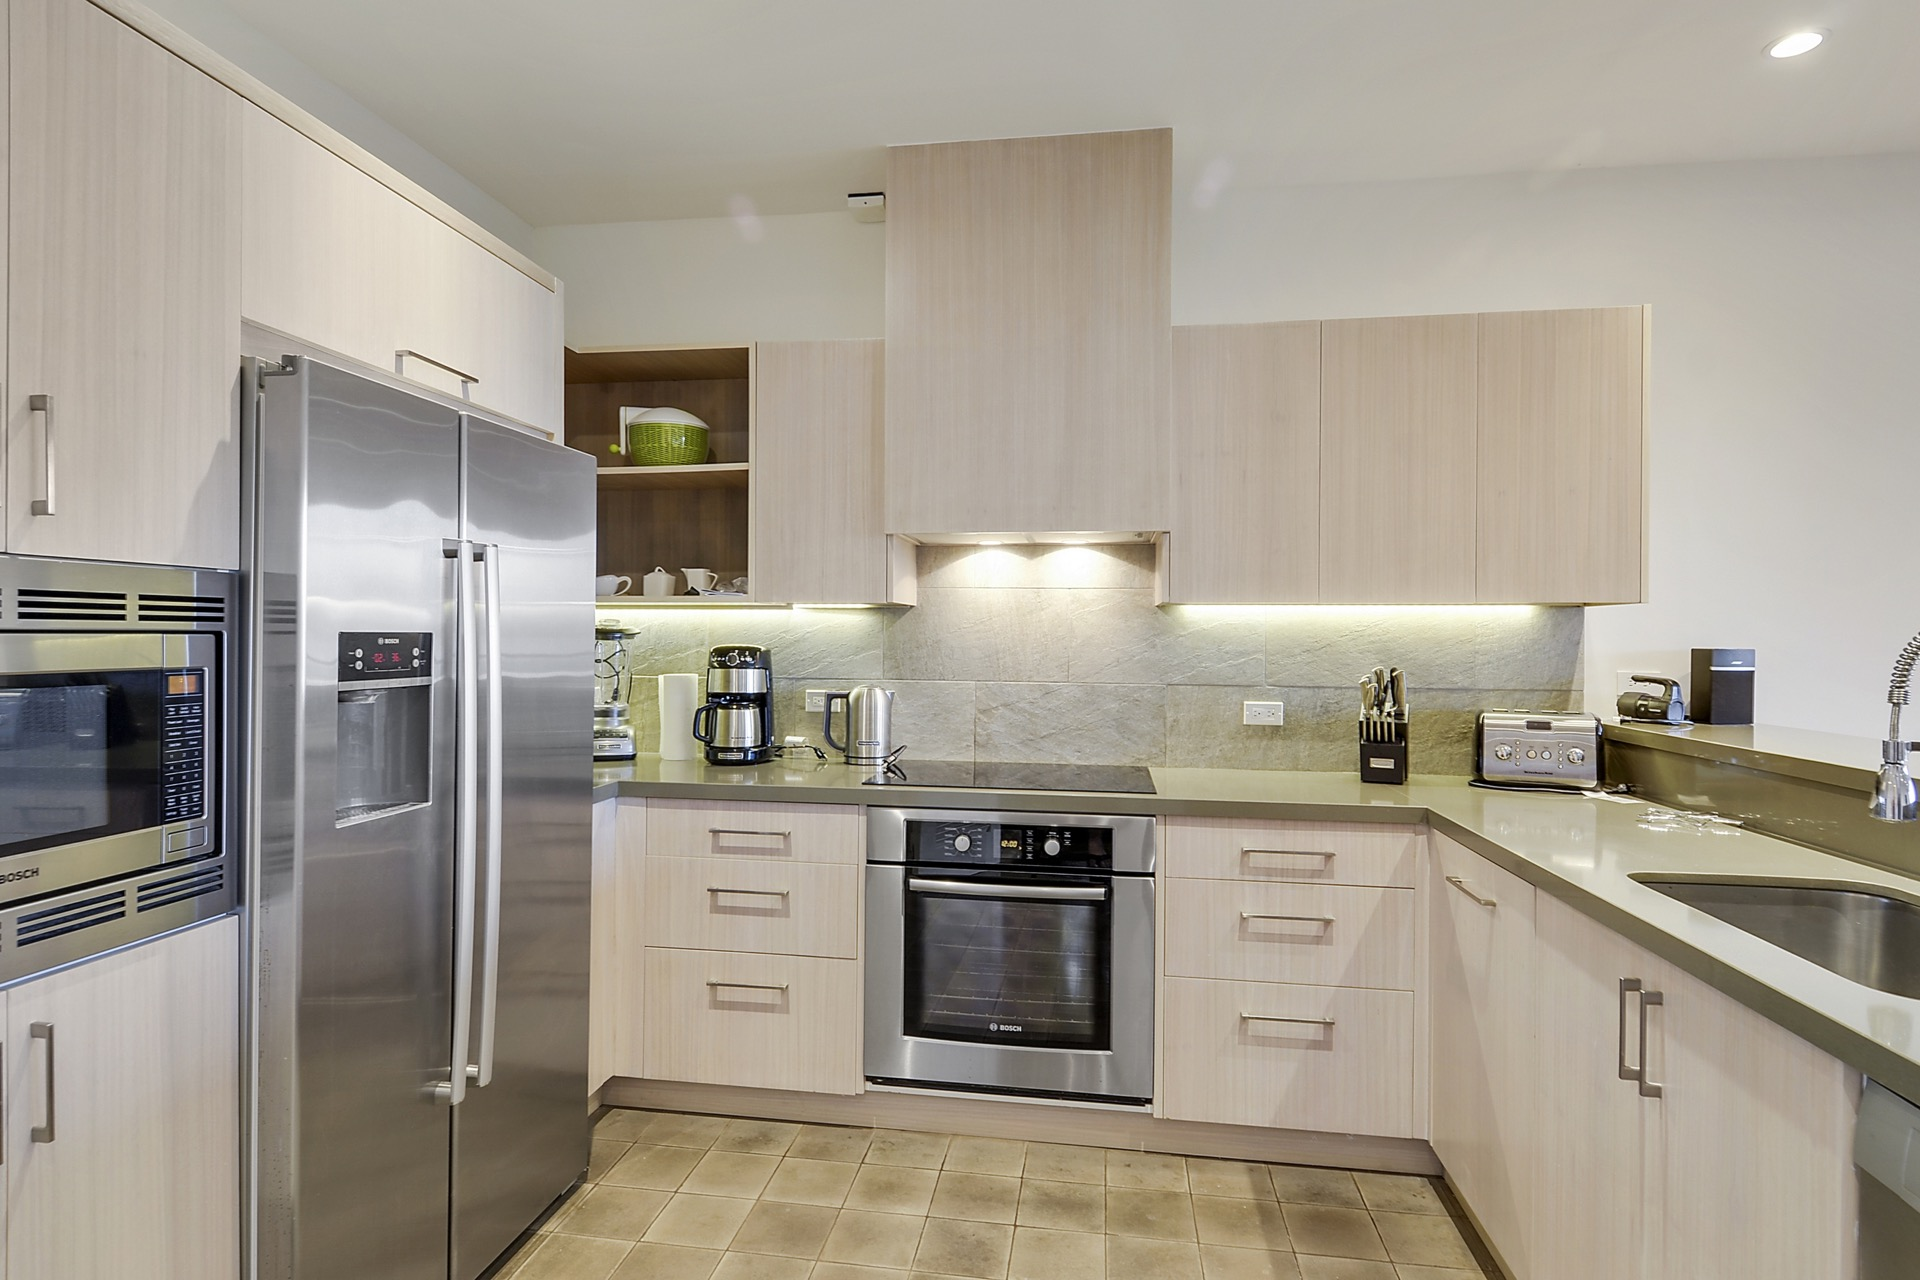 Fully equipped kitchen to prepare your own meals